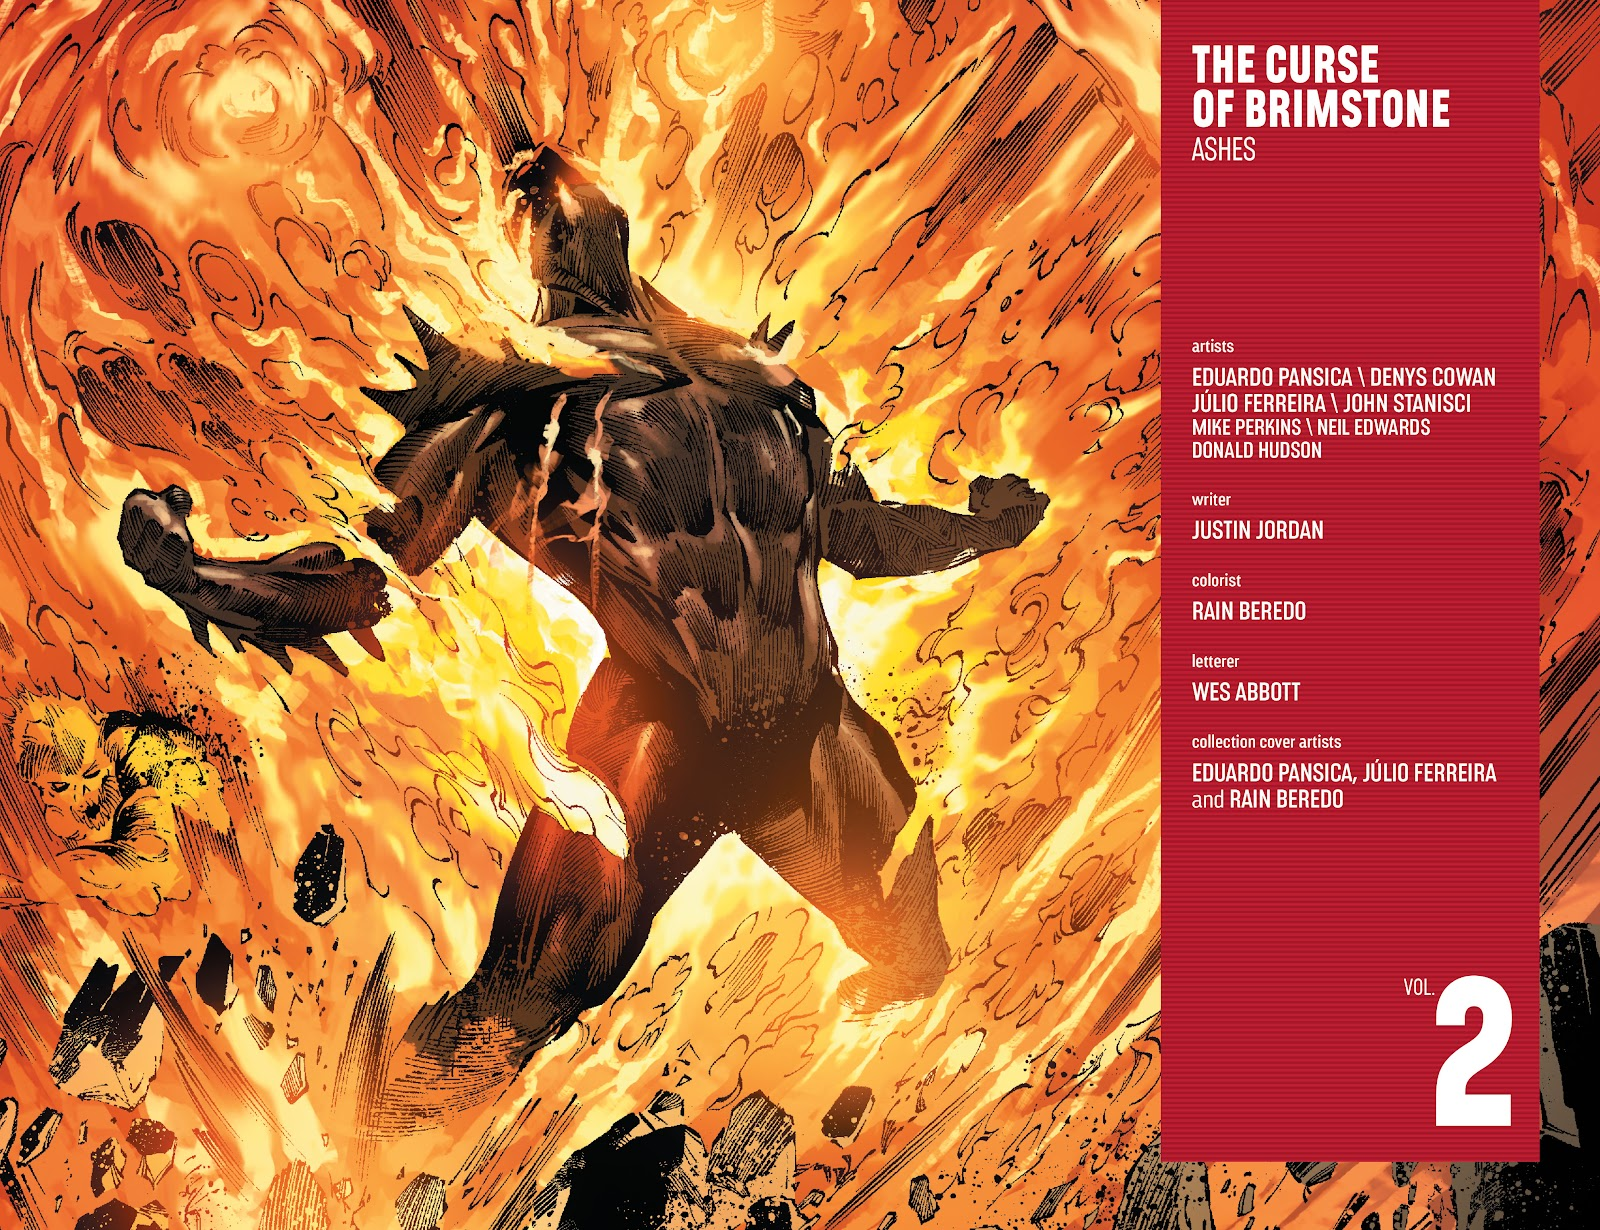 Read online The Curse of Brimstone: Ashes comic -  Issue # TPB (Part 1) - 3